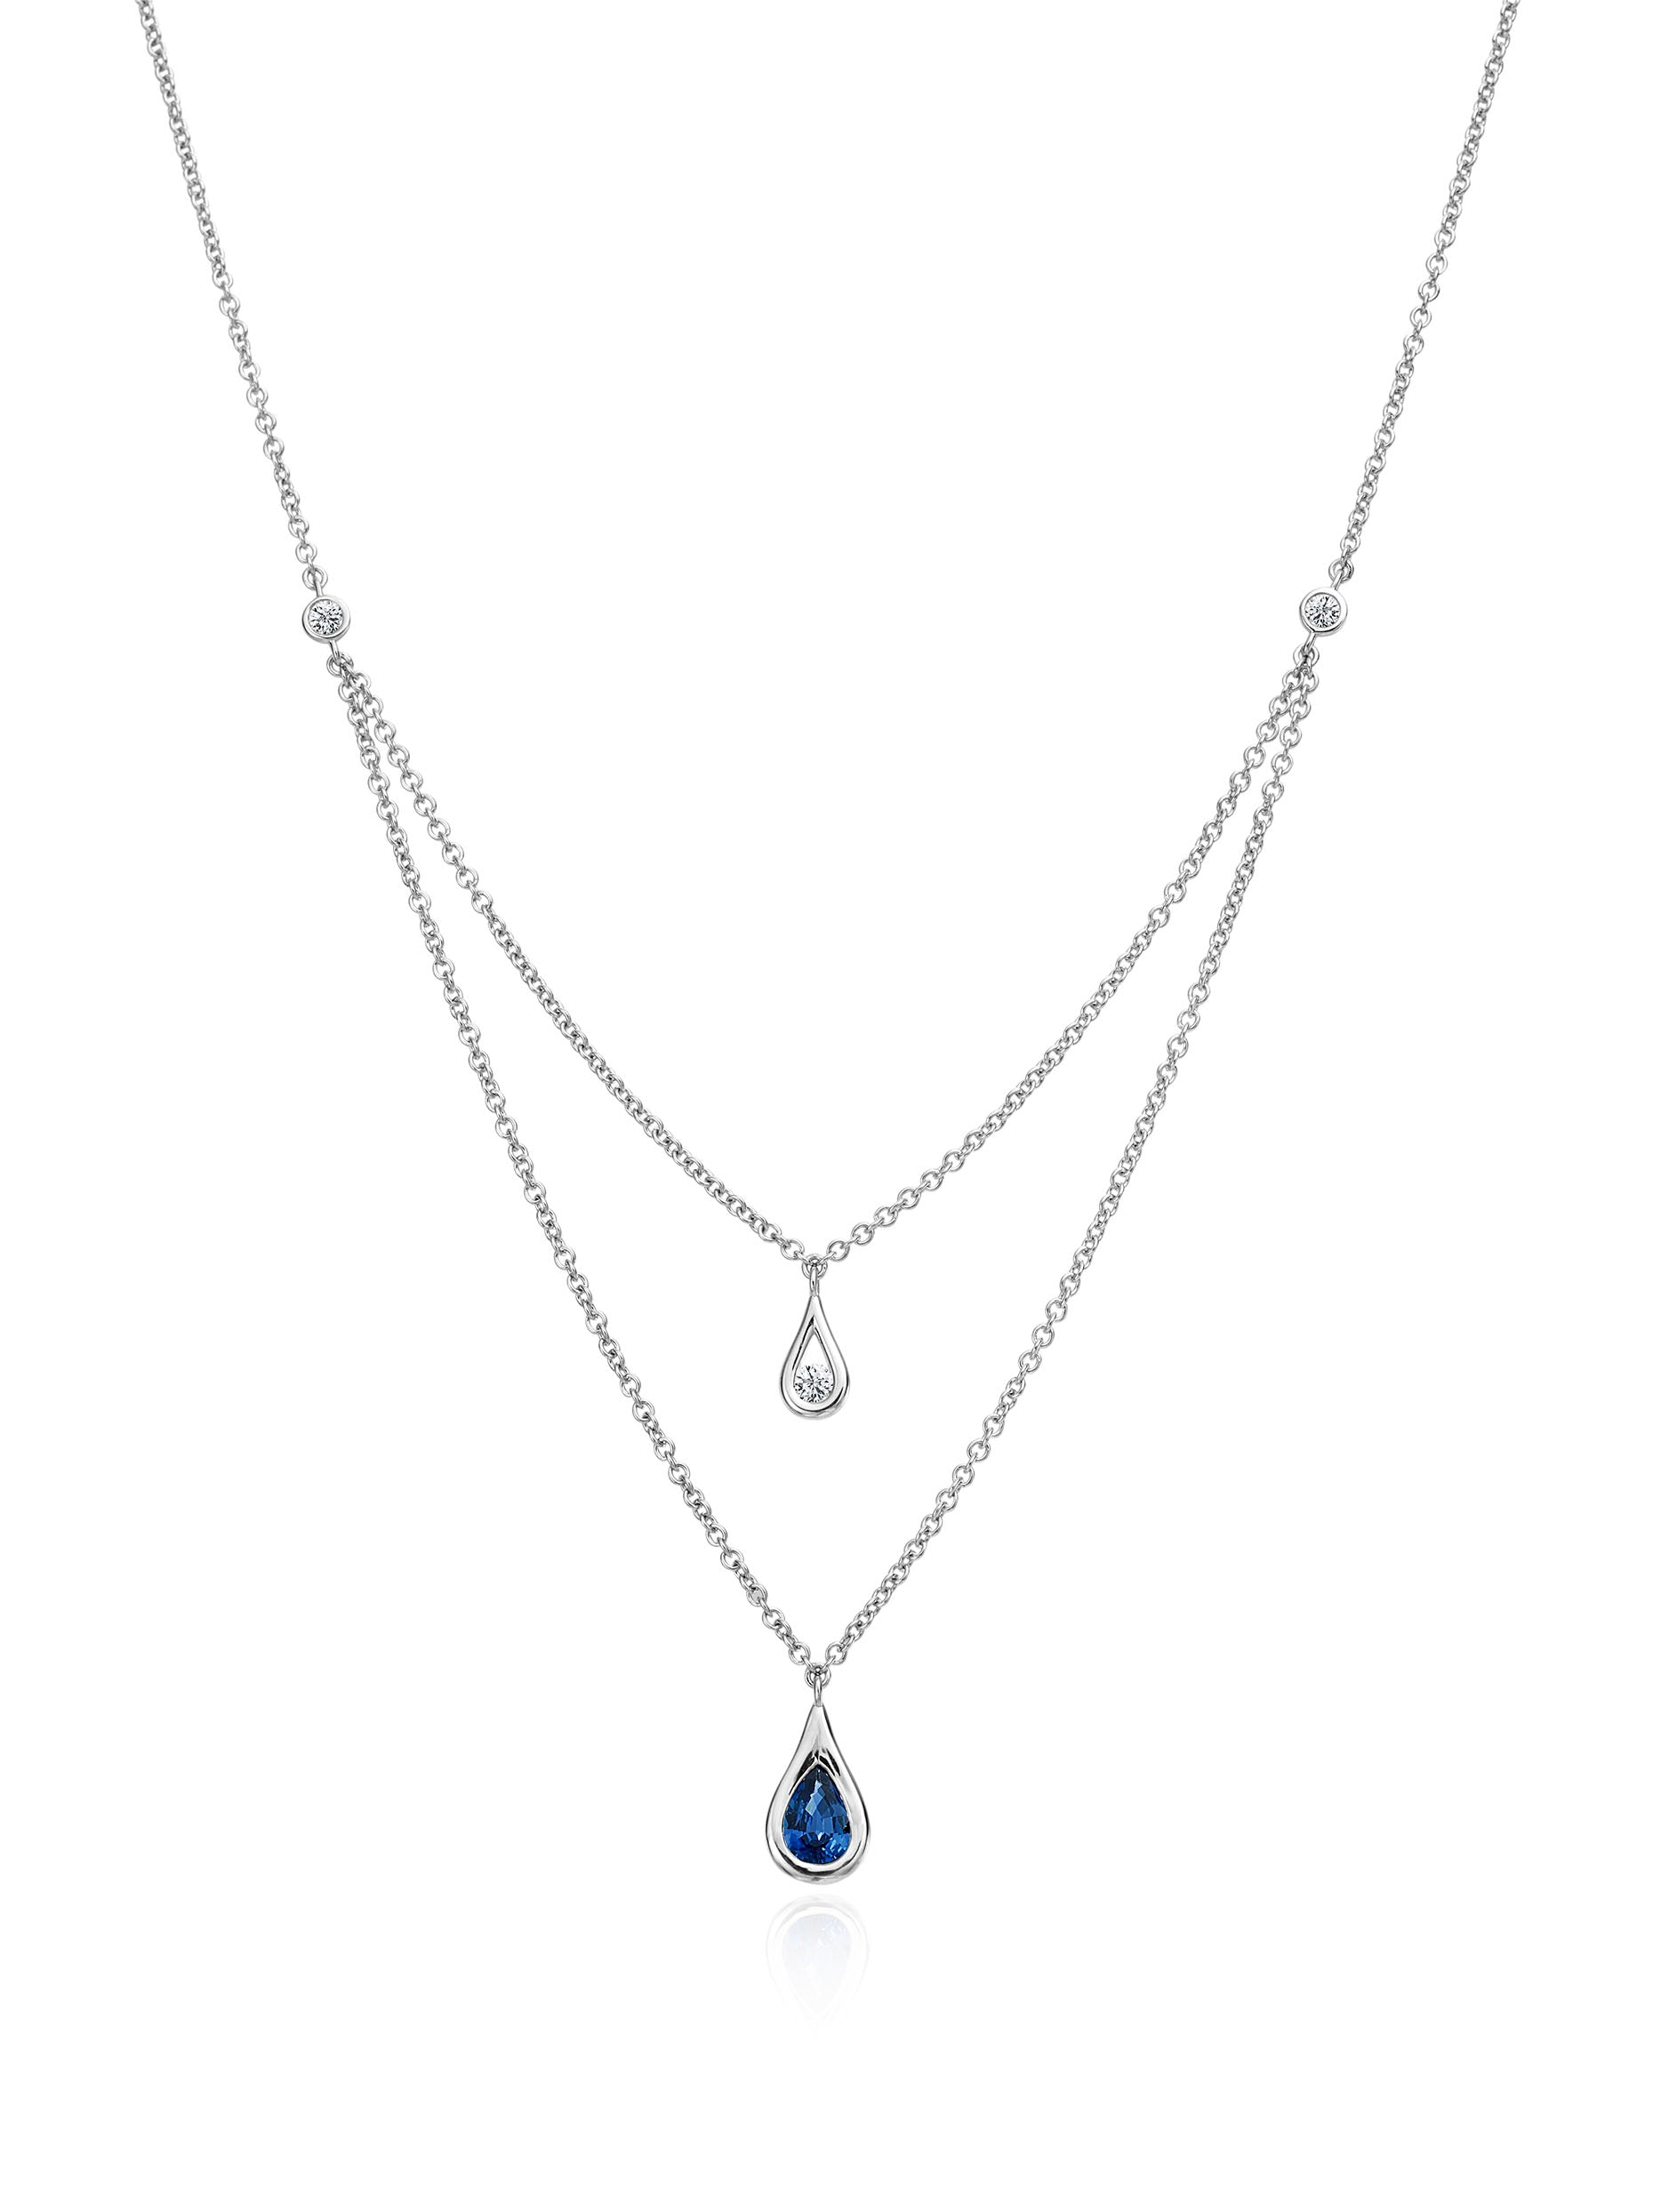 Layering Diamond and Sapphire Necklace